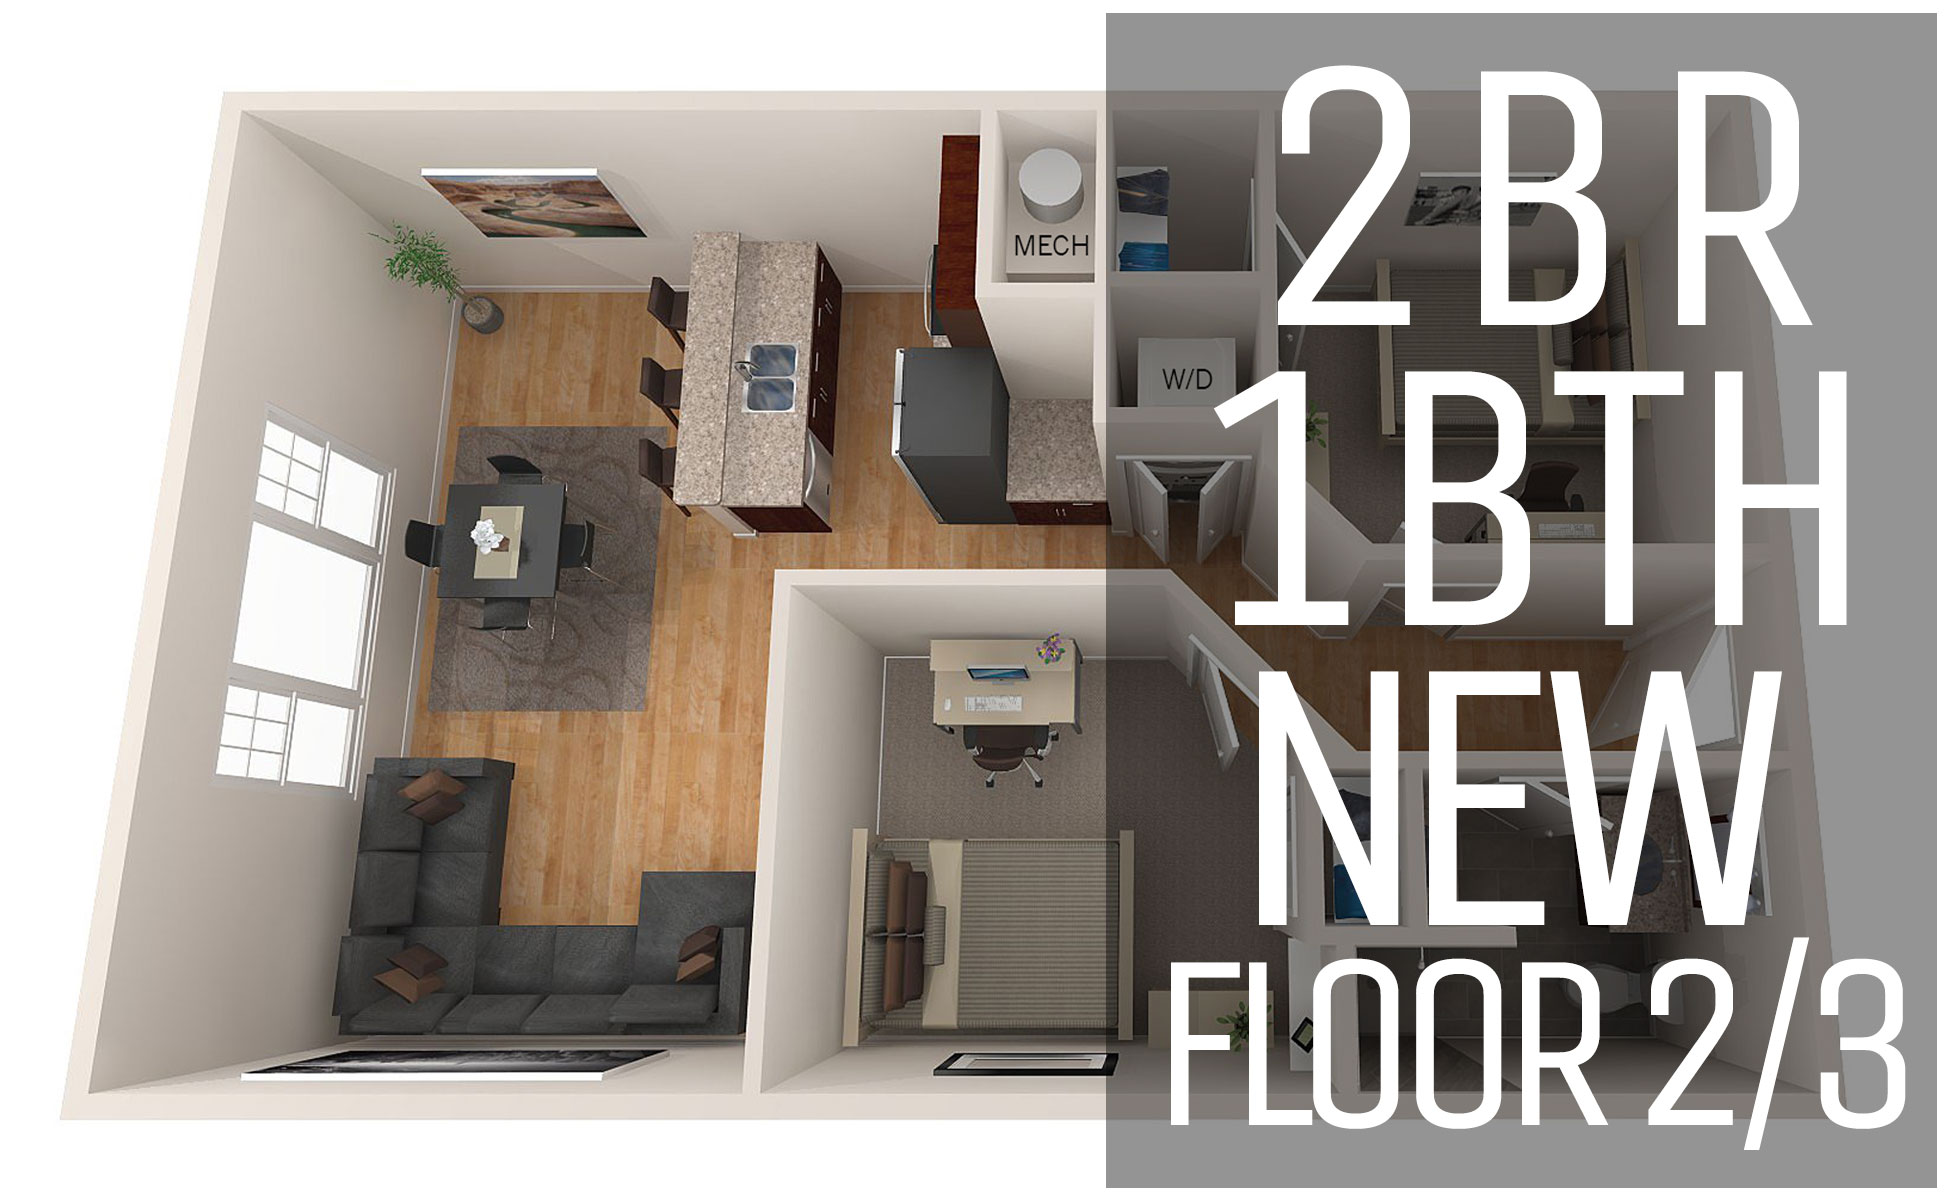 Rivers Edge Apartments New Model Floor Plans 2 Bedroom / 1bath / Floor 1/2